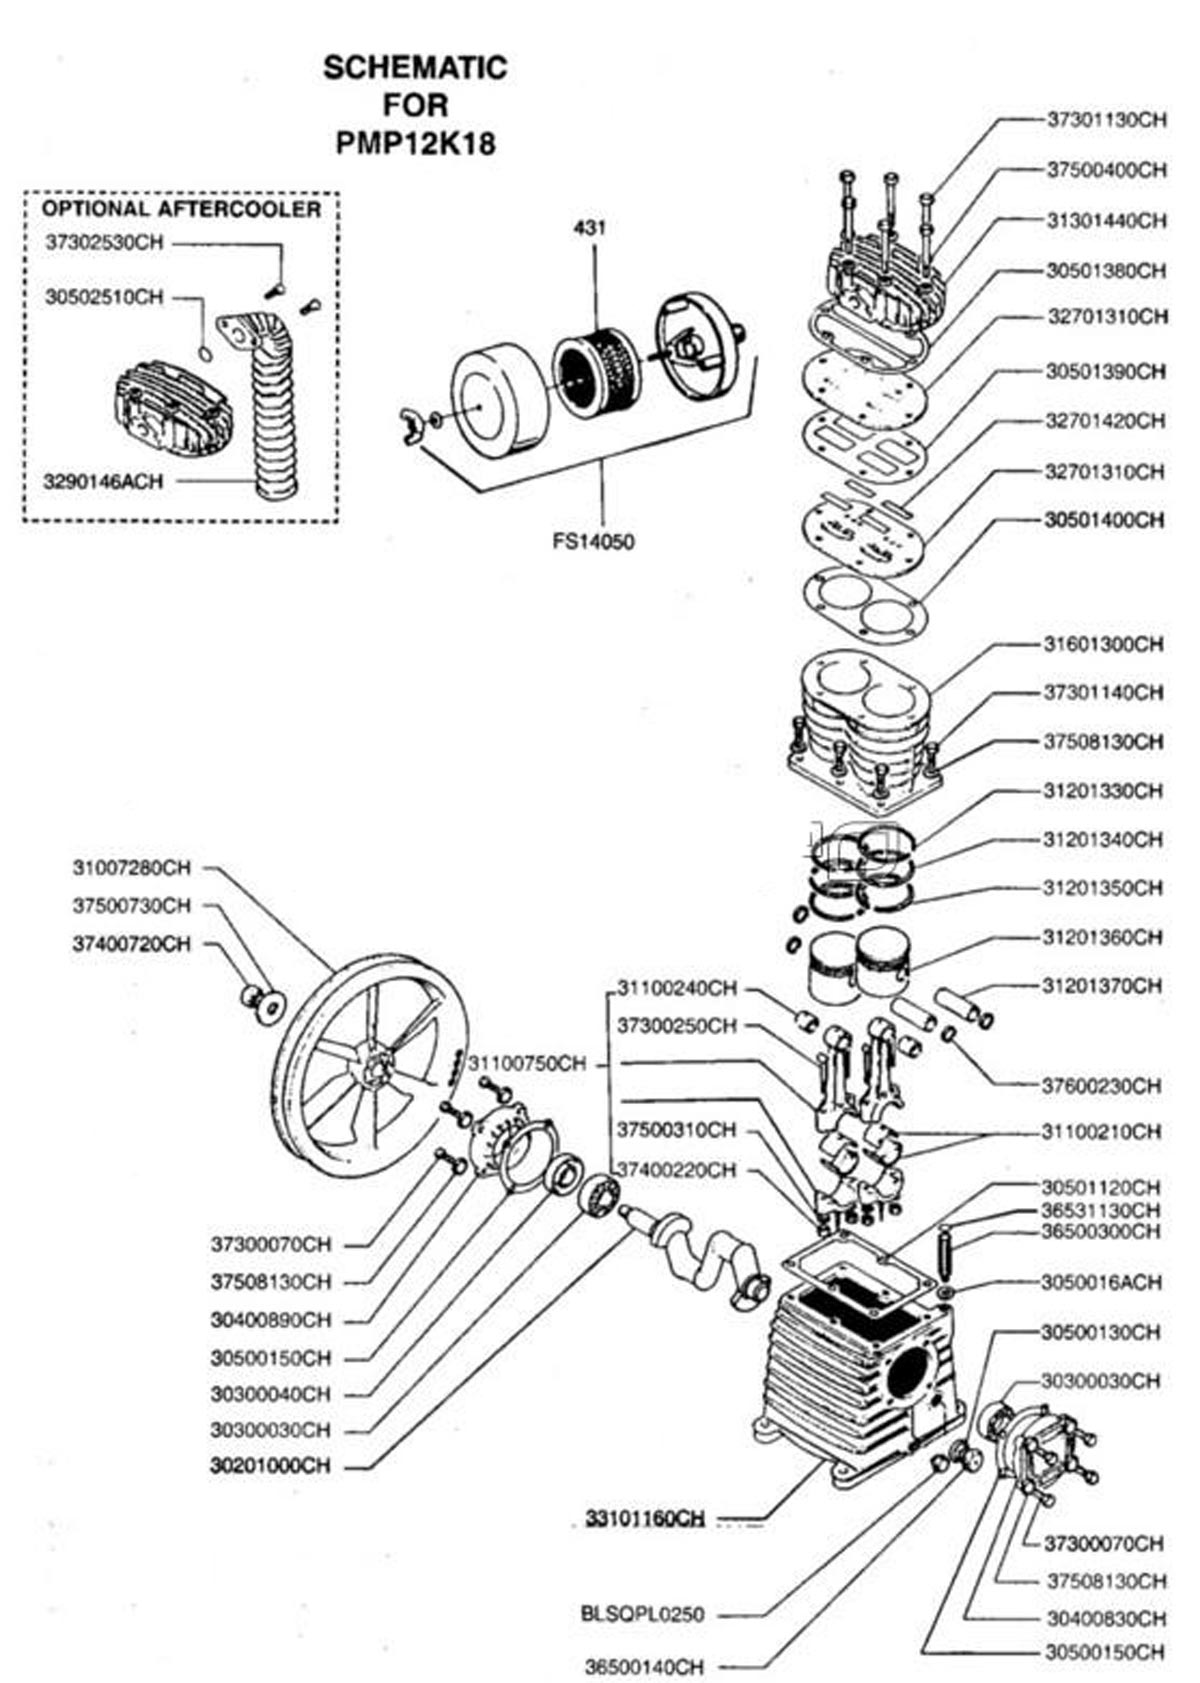 K18 - Air Compressor Pump Parts schematic